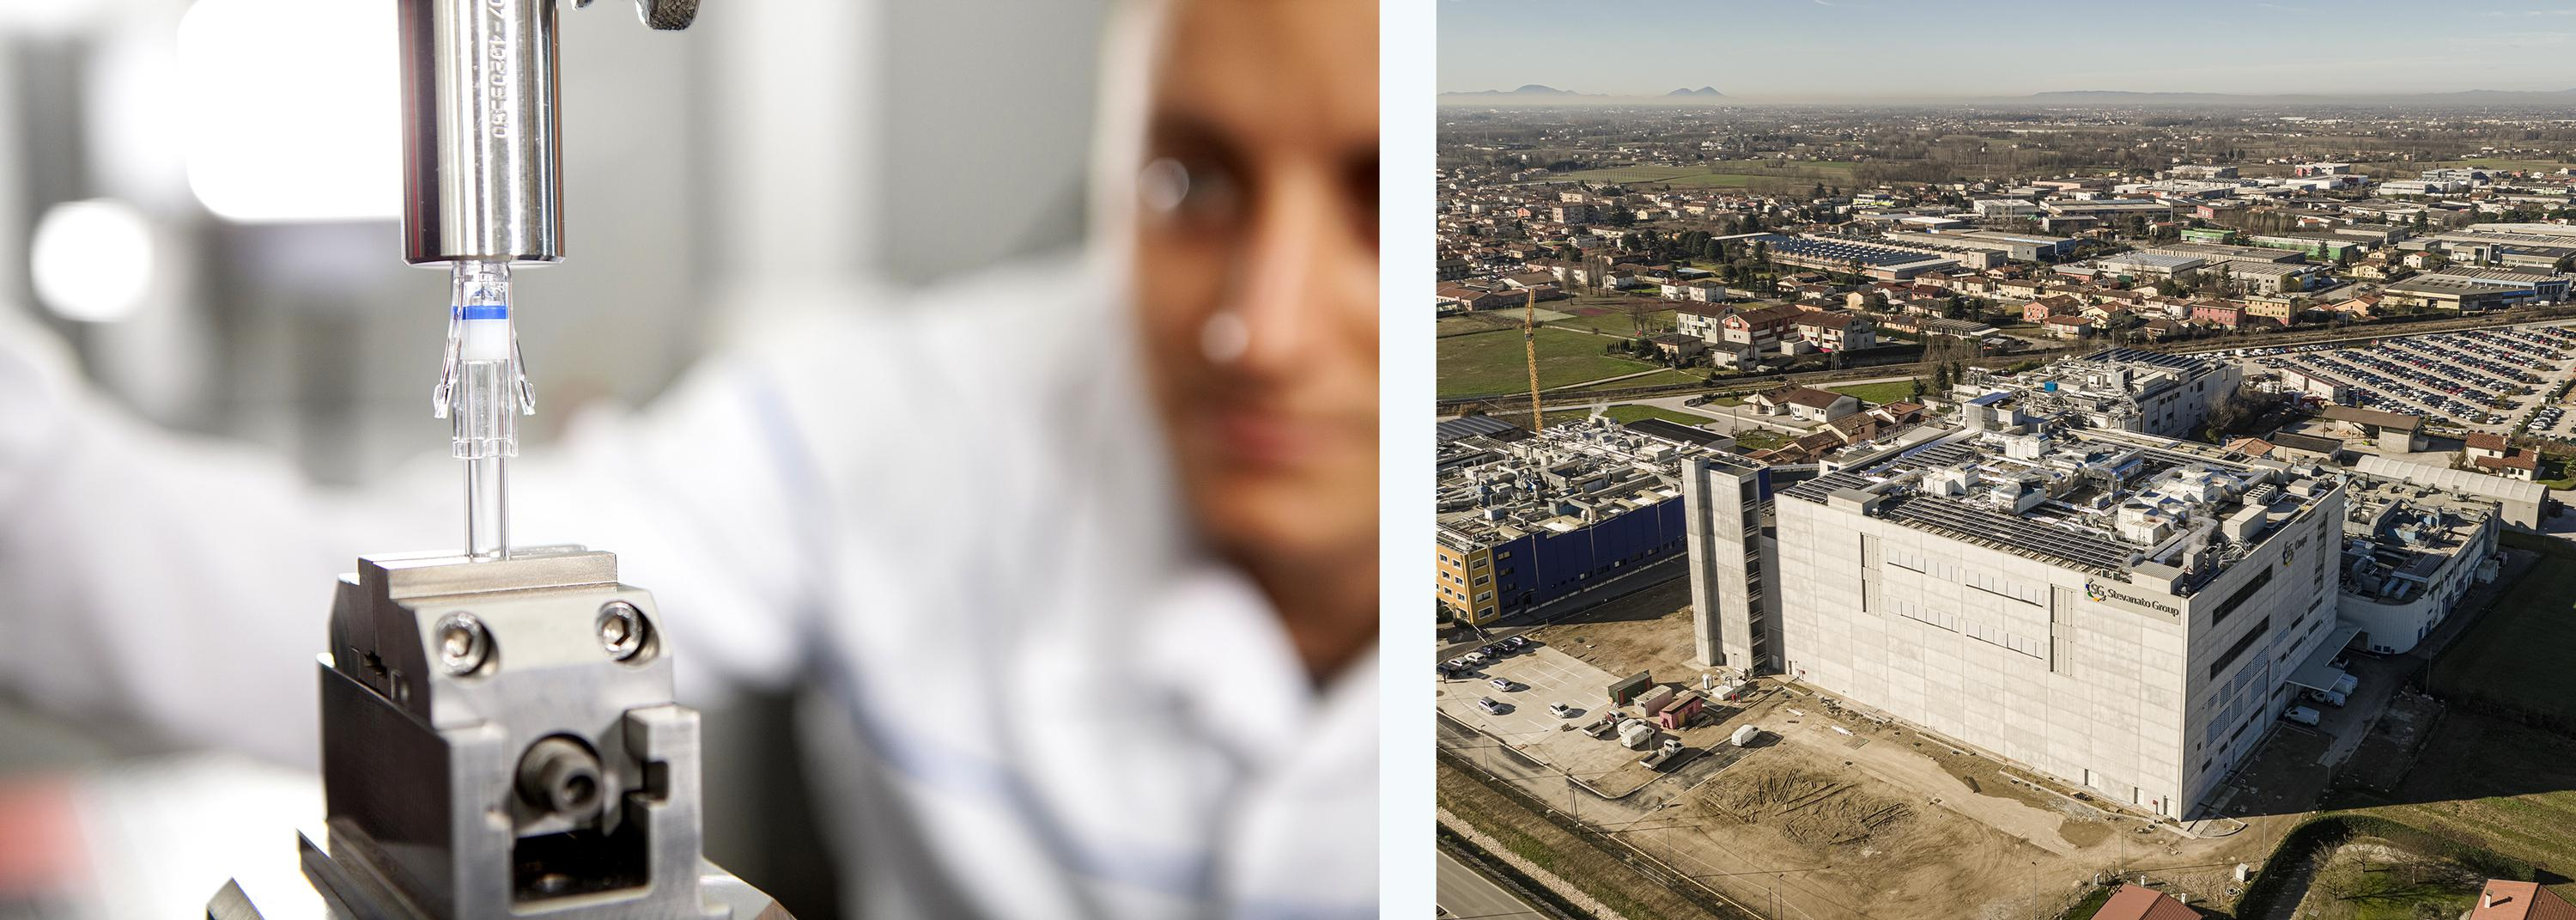 Left: A machine at a Stevanato Group factory. Right: Stevanato Group's factory in Piombino Dese, Italy.